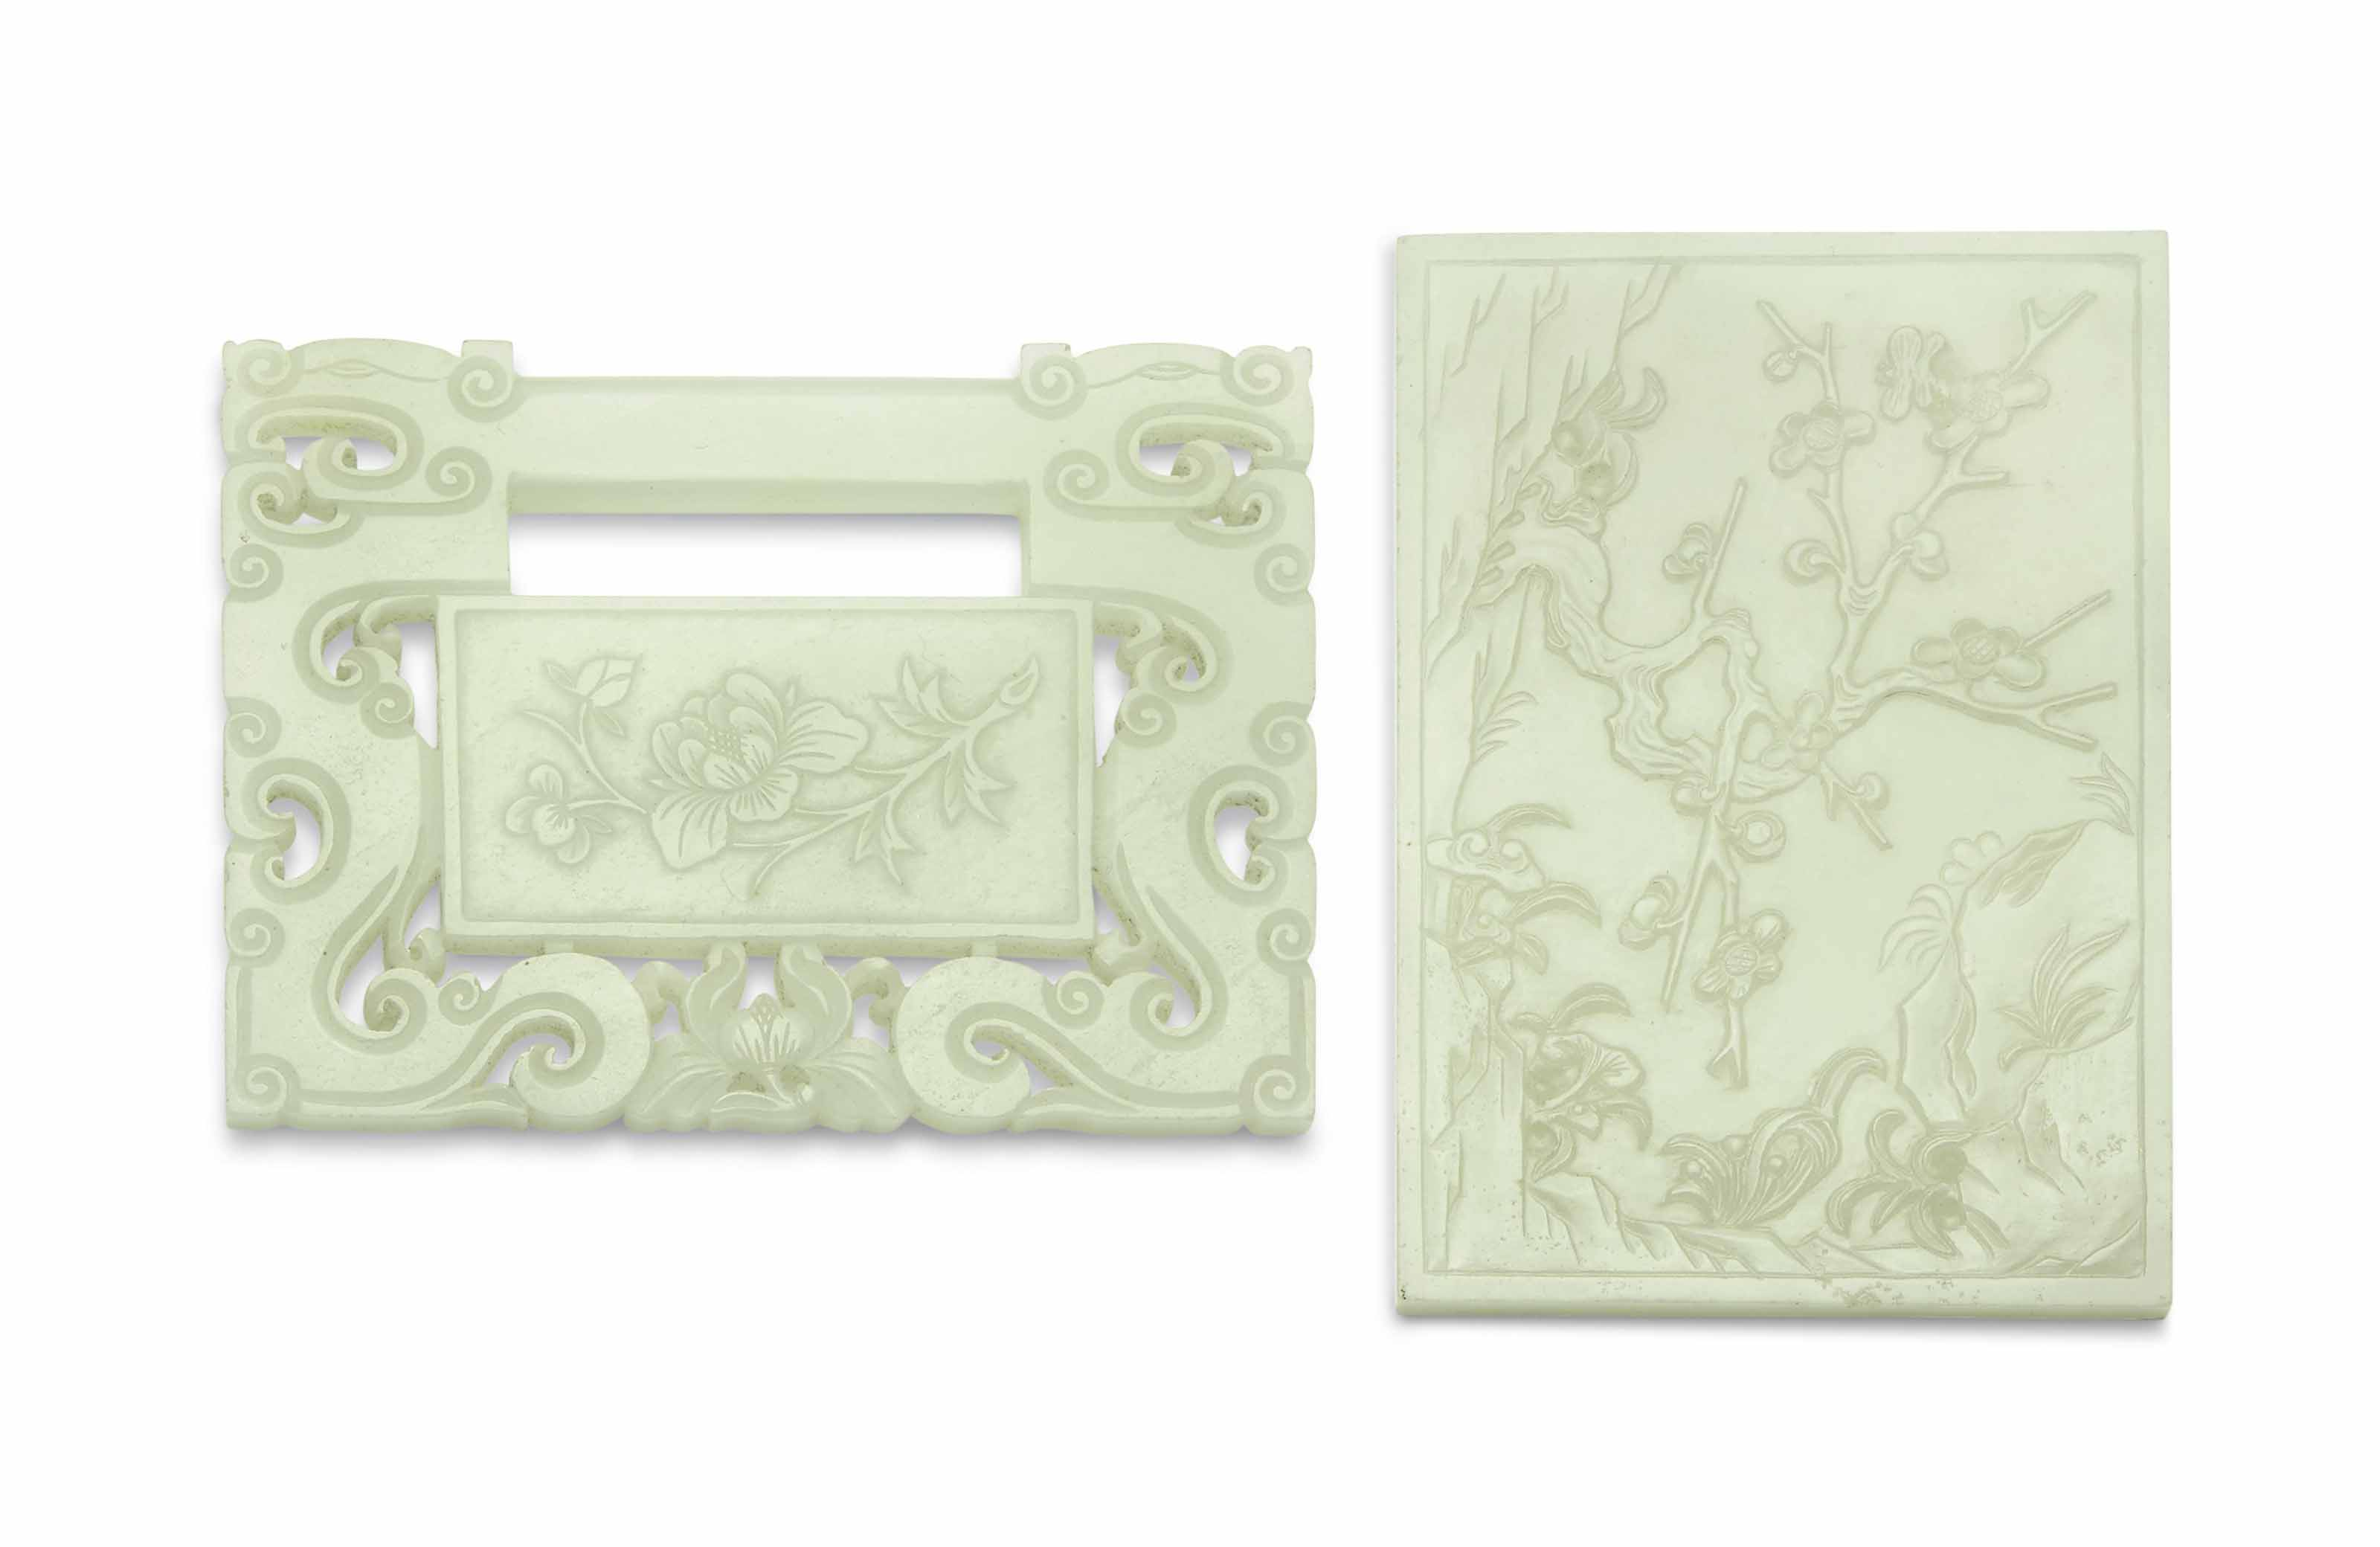 A WHITE JADE PLAQUE AND A PALE